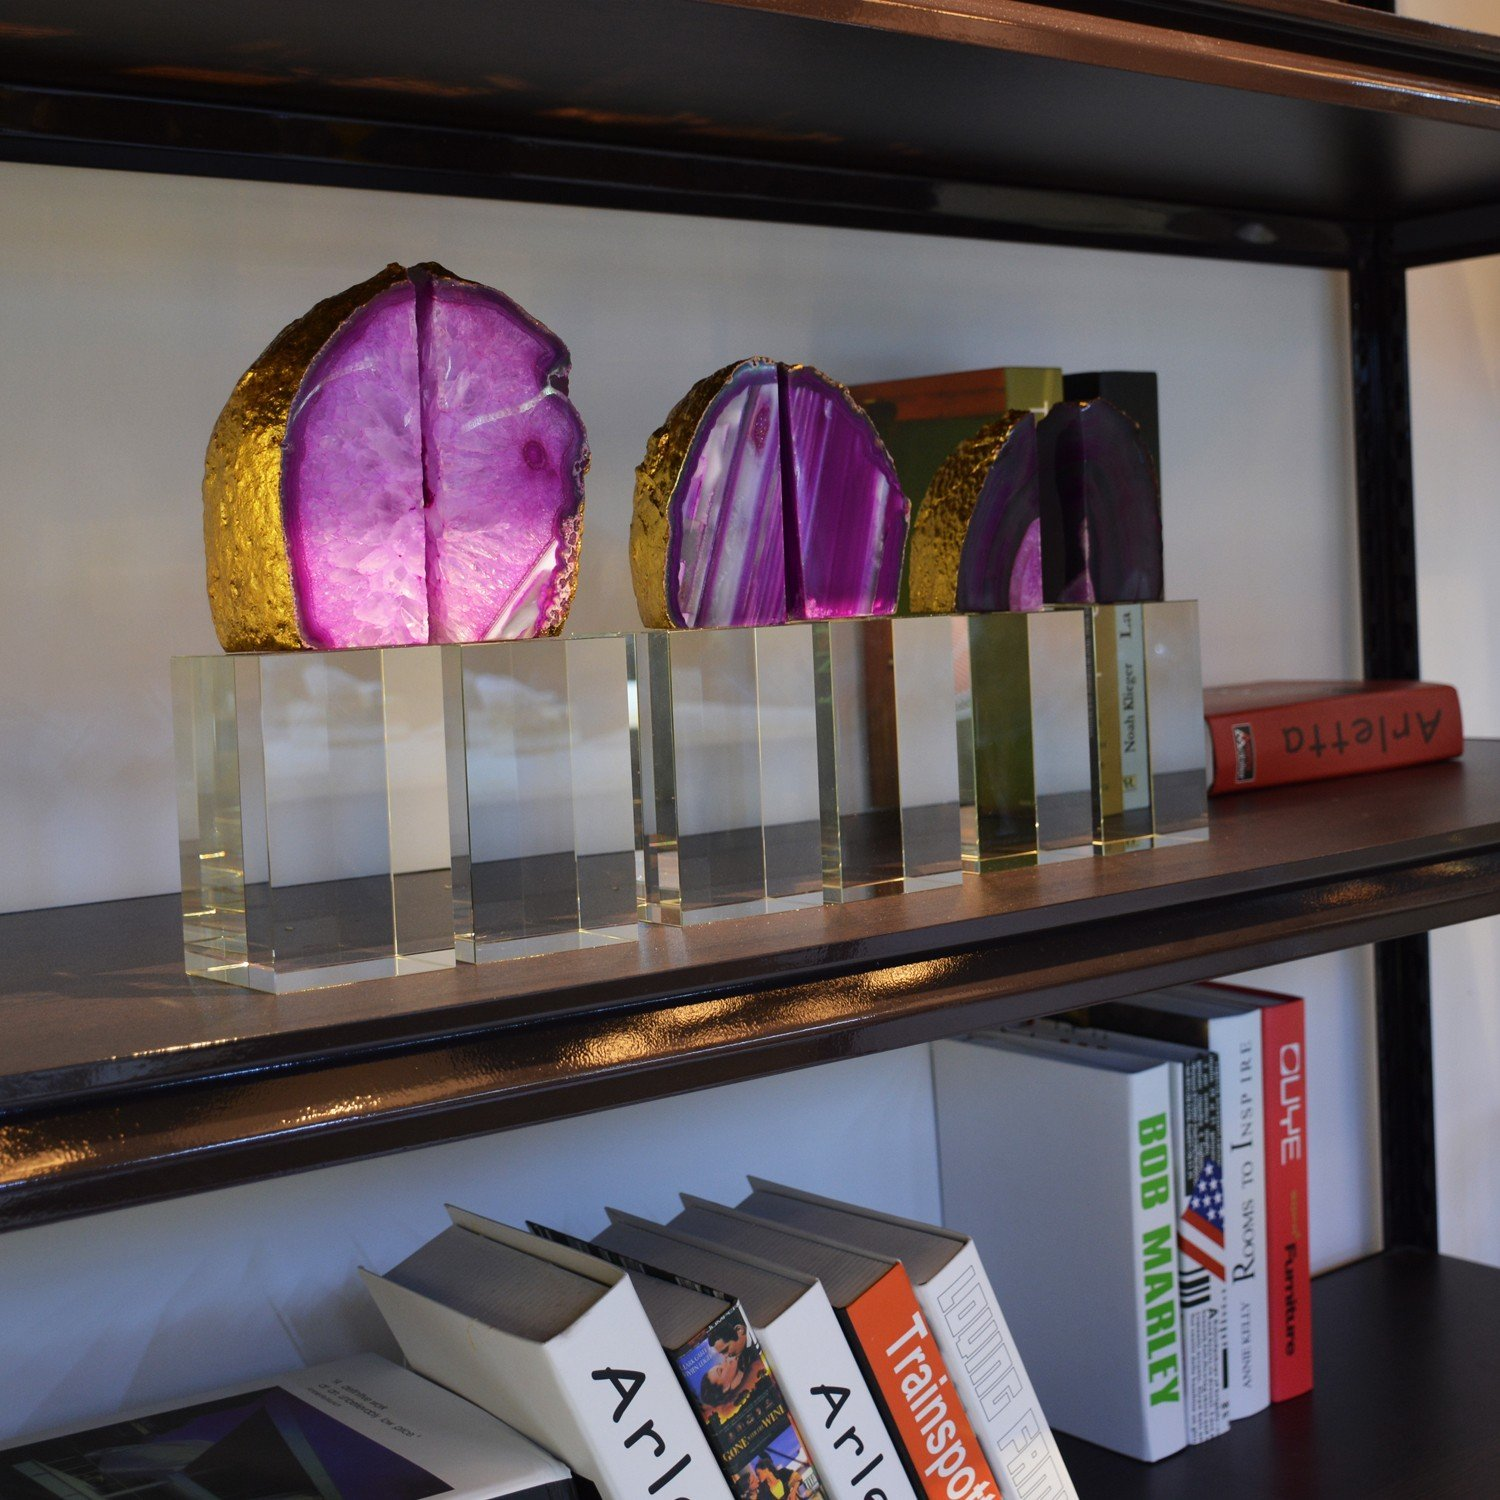 BRLIGHTING Crystal and Agate Bookends Heavy Duty in Purple 12.5 lbs BRAC4108 for Office Shelves and Desk Set of 2